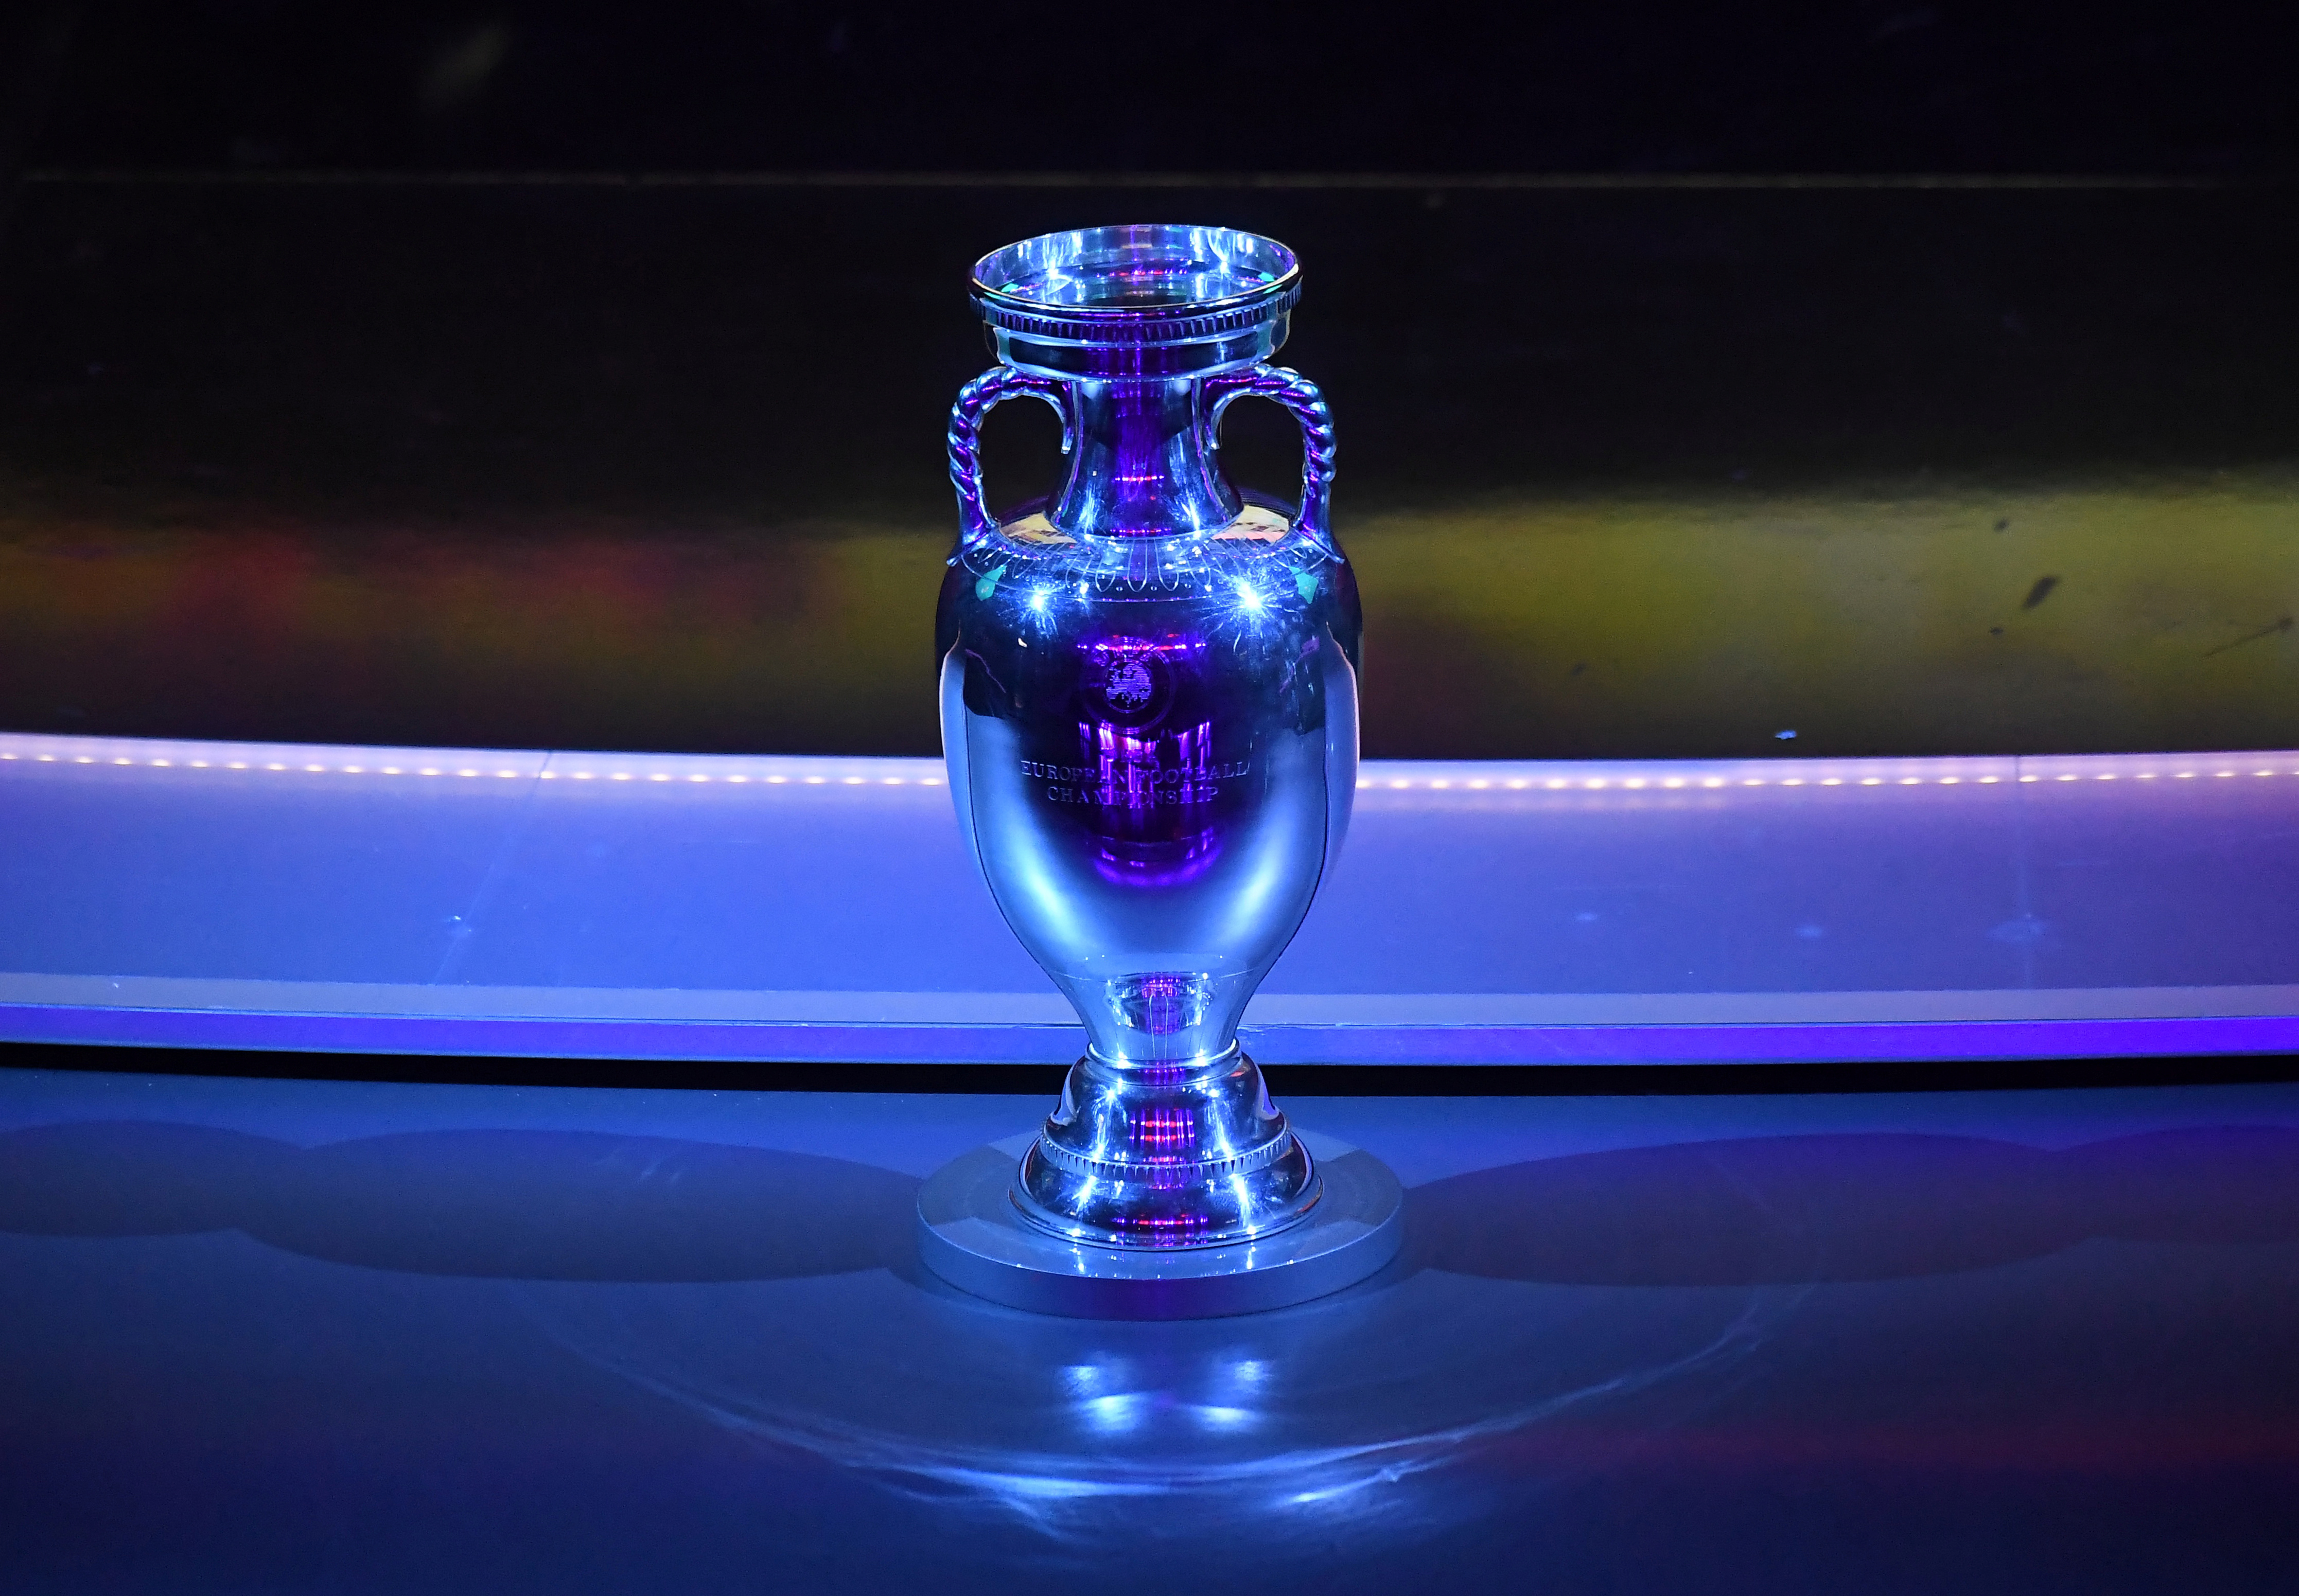 Soccer: UEFA adopts 'fan-first' ticketing policy for Euro 2020